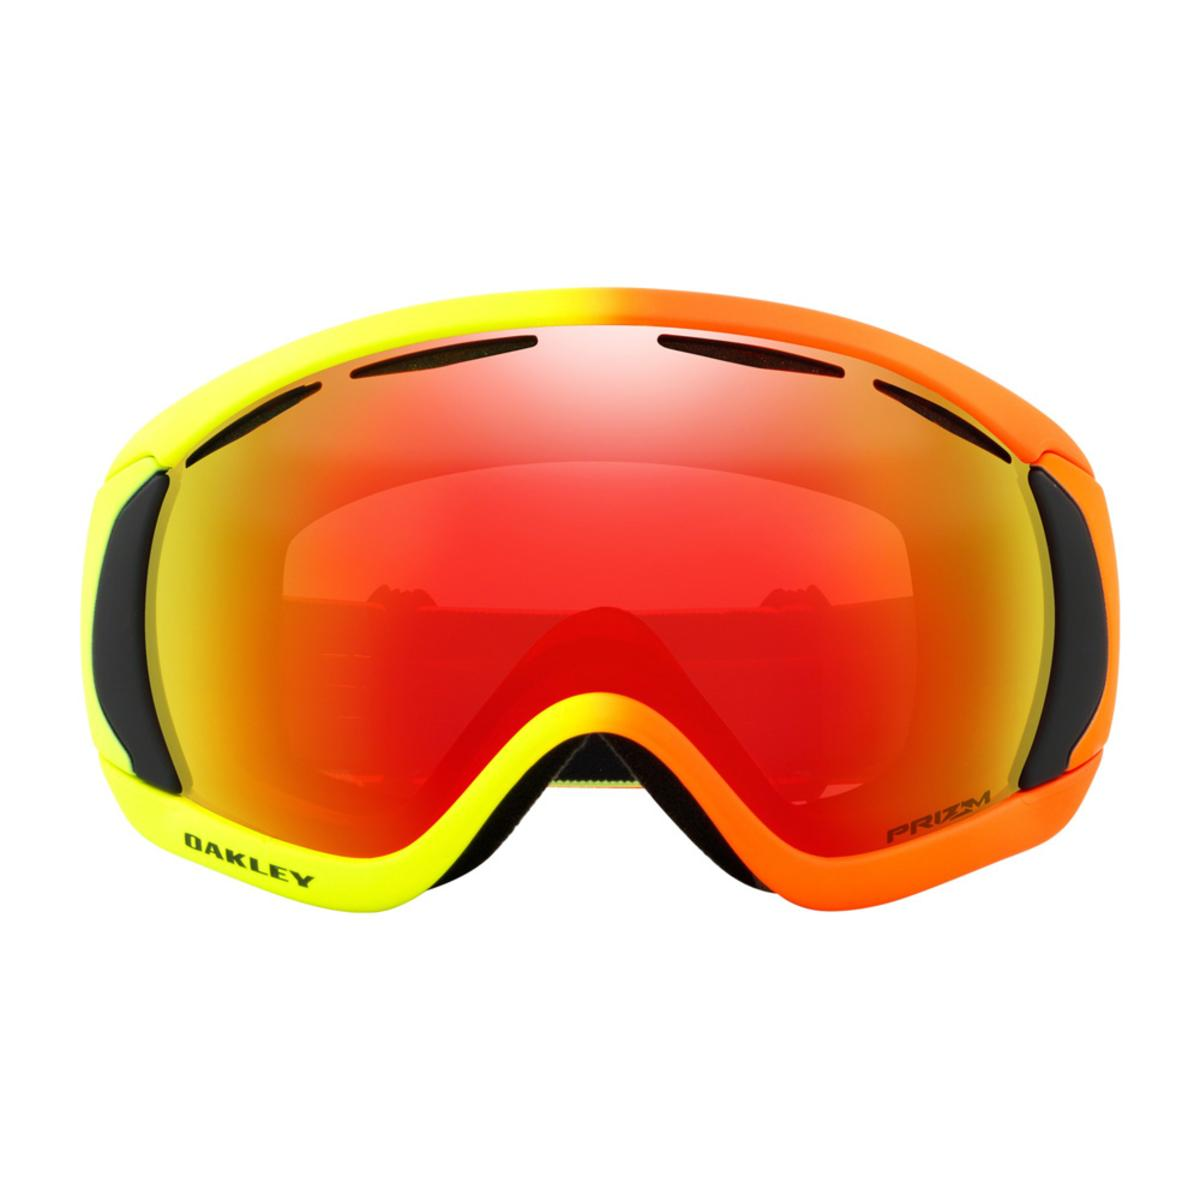 e1ef7833c09 Oakley Canopy Harmony Fade Collection Snow Goggle w Prizm Snow Torch  Iridium - The Warming Store